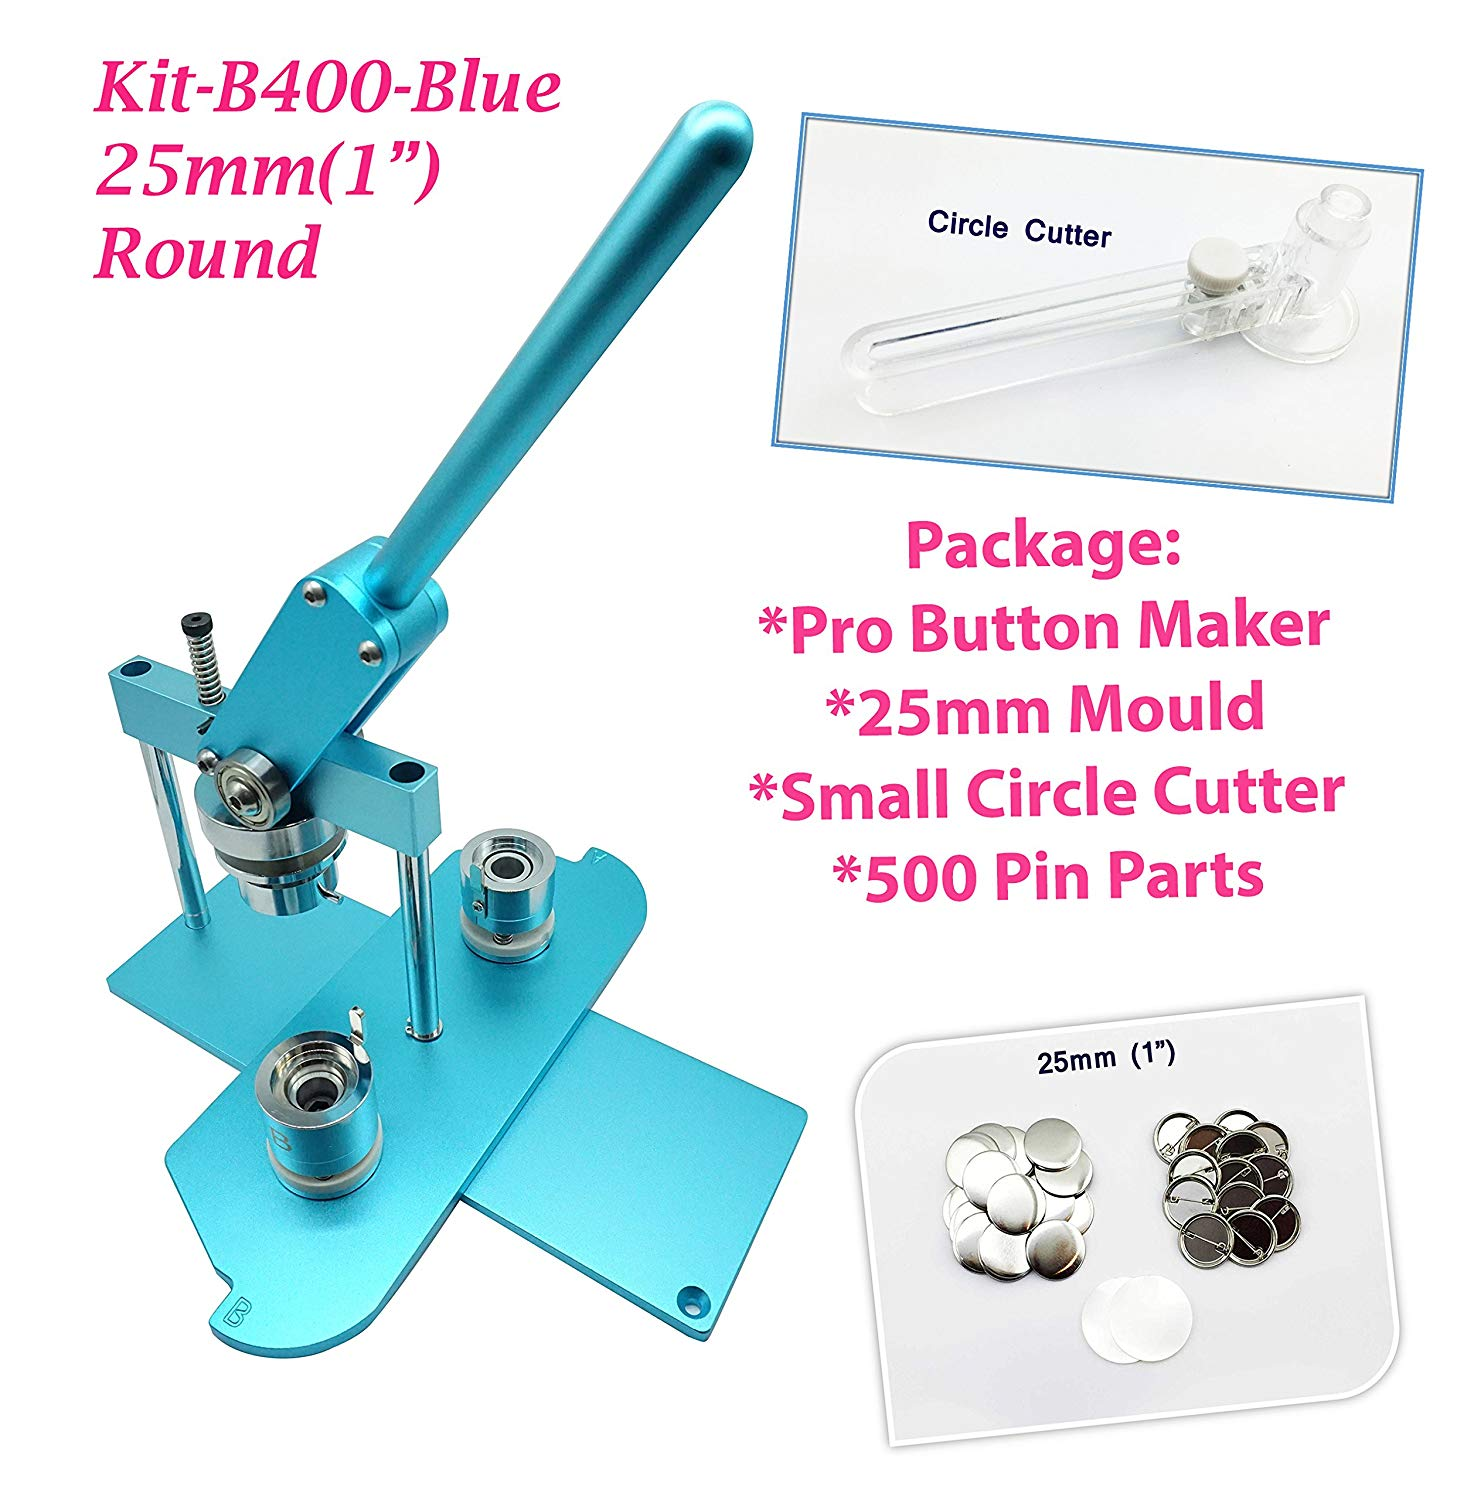 "ChiButtons (KIT) 25mm(1"") Pro Badge Machine Button Maker B400 + Mould + 500 Parts + Circle Cutter Metric System(Blue)"